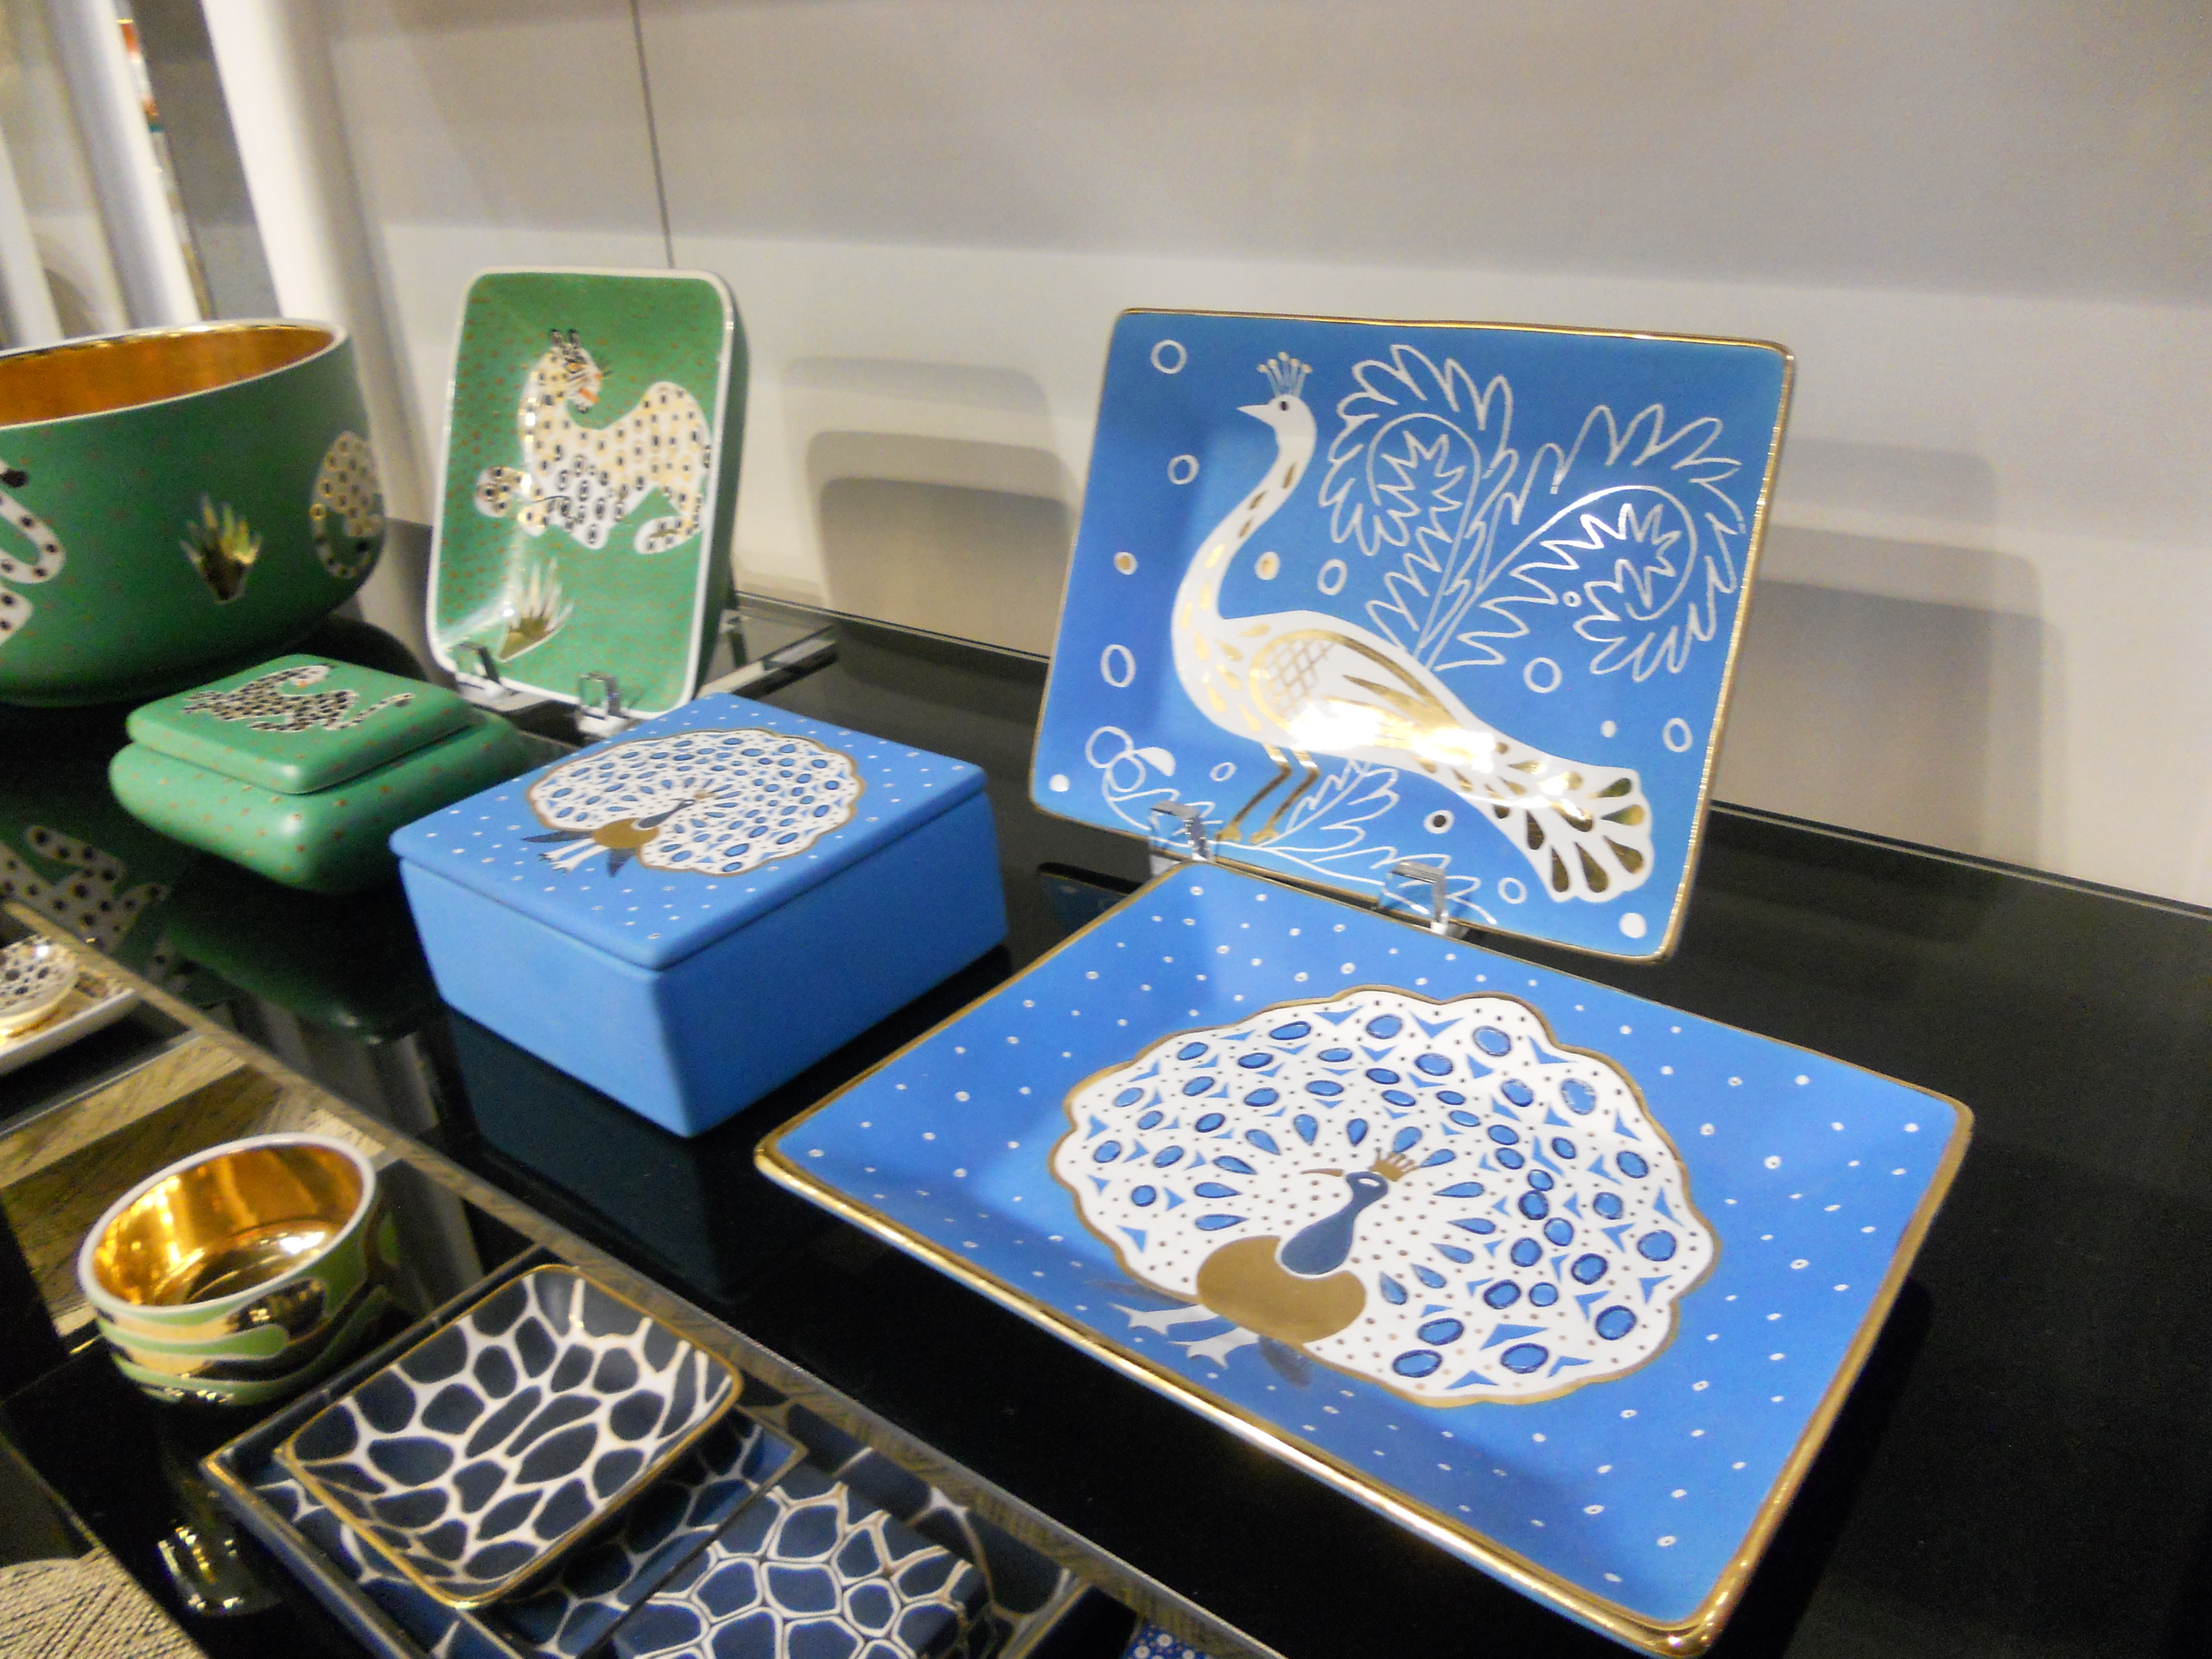 Chic waylande gregory for home accessories ideas with waylande gregory ceramics